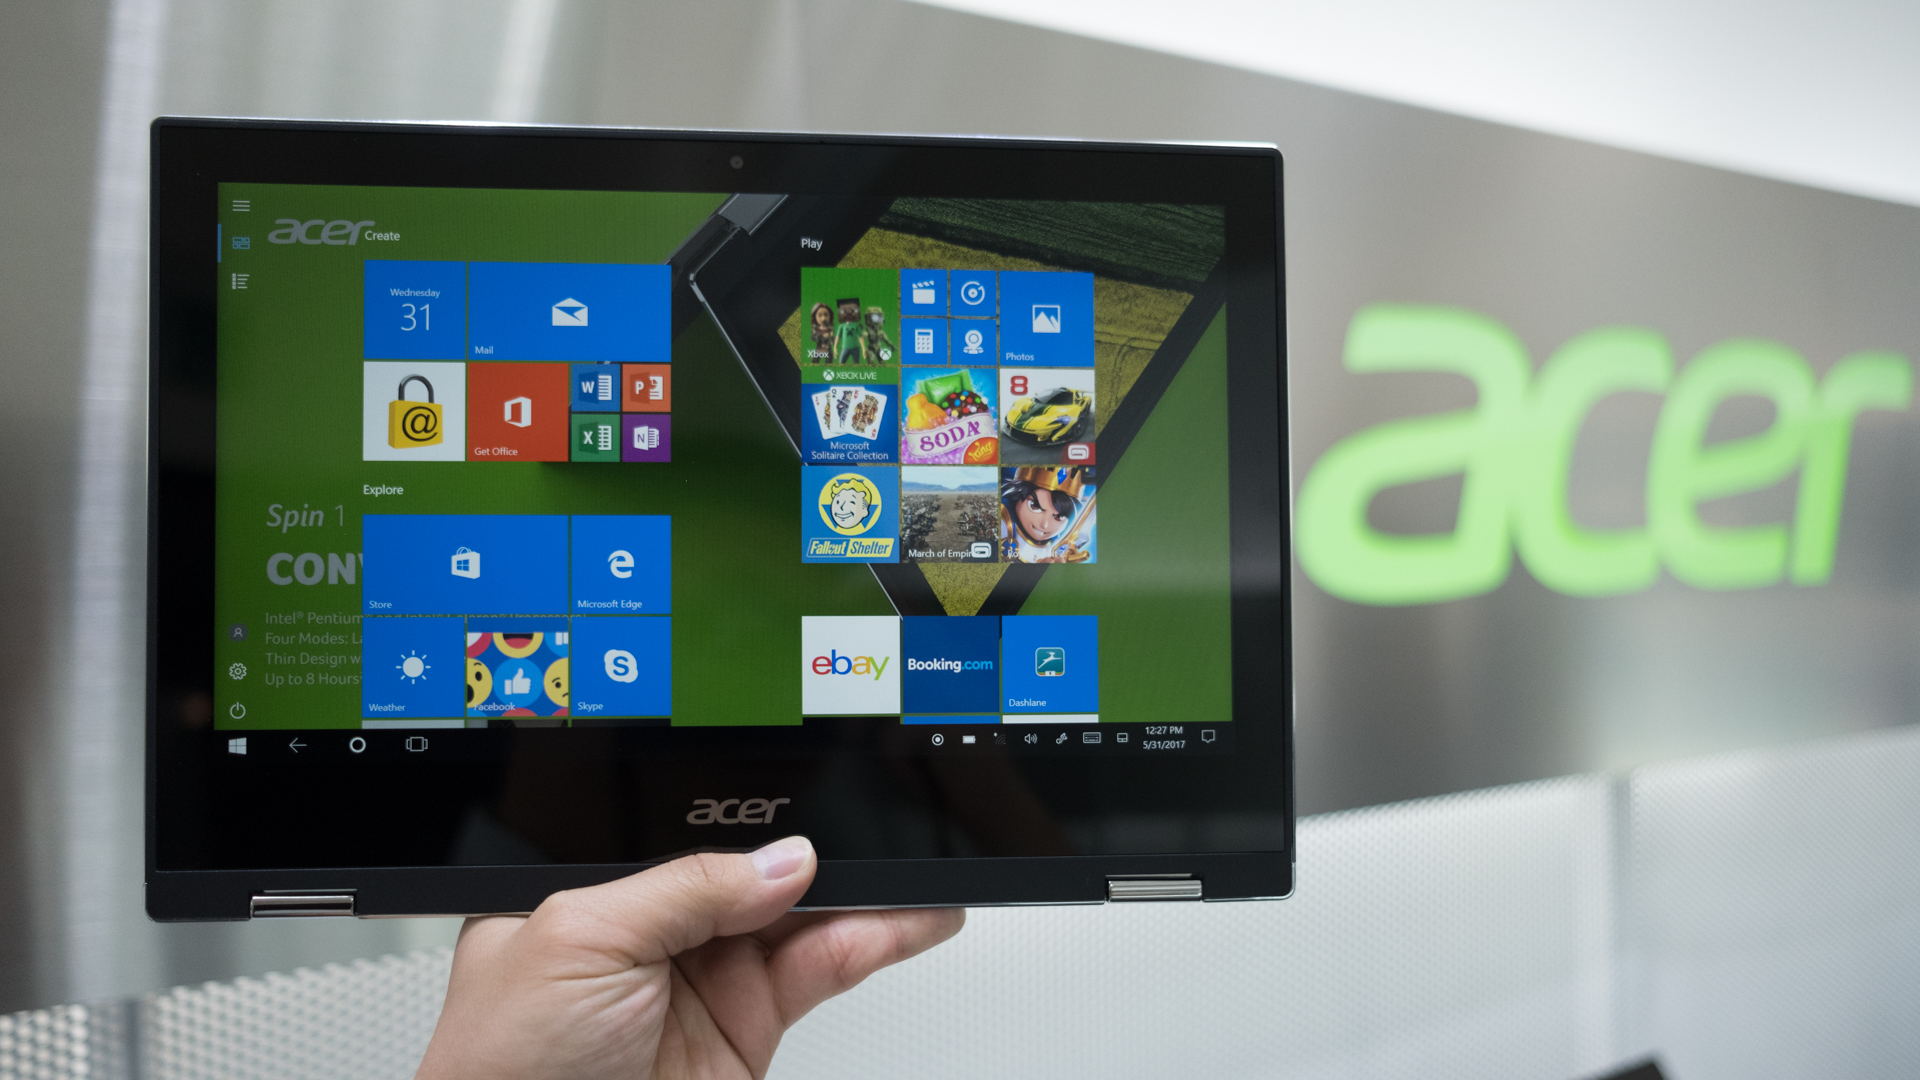 ACER AP111S DRIVERS FOR PC